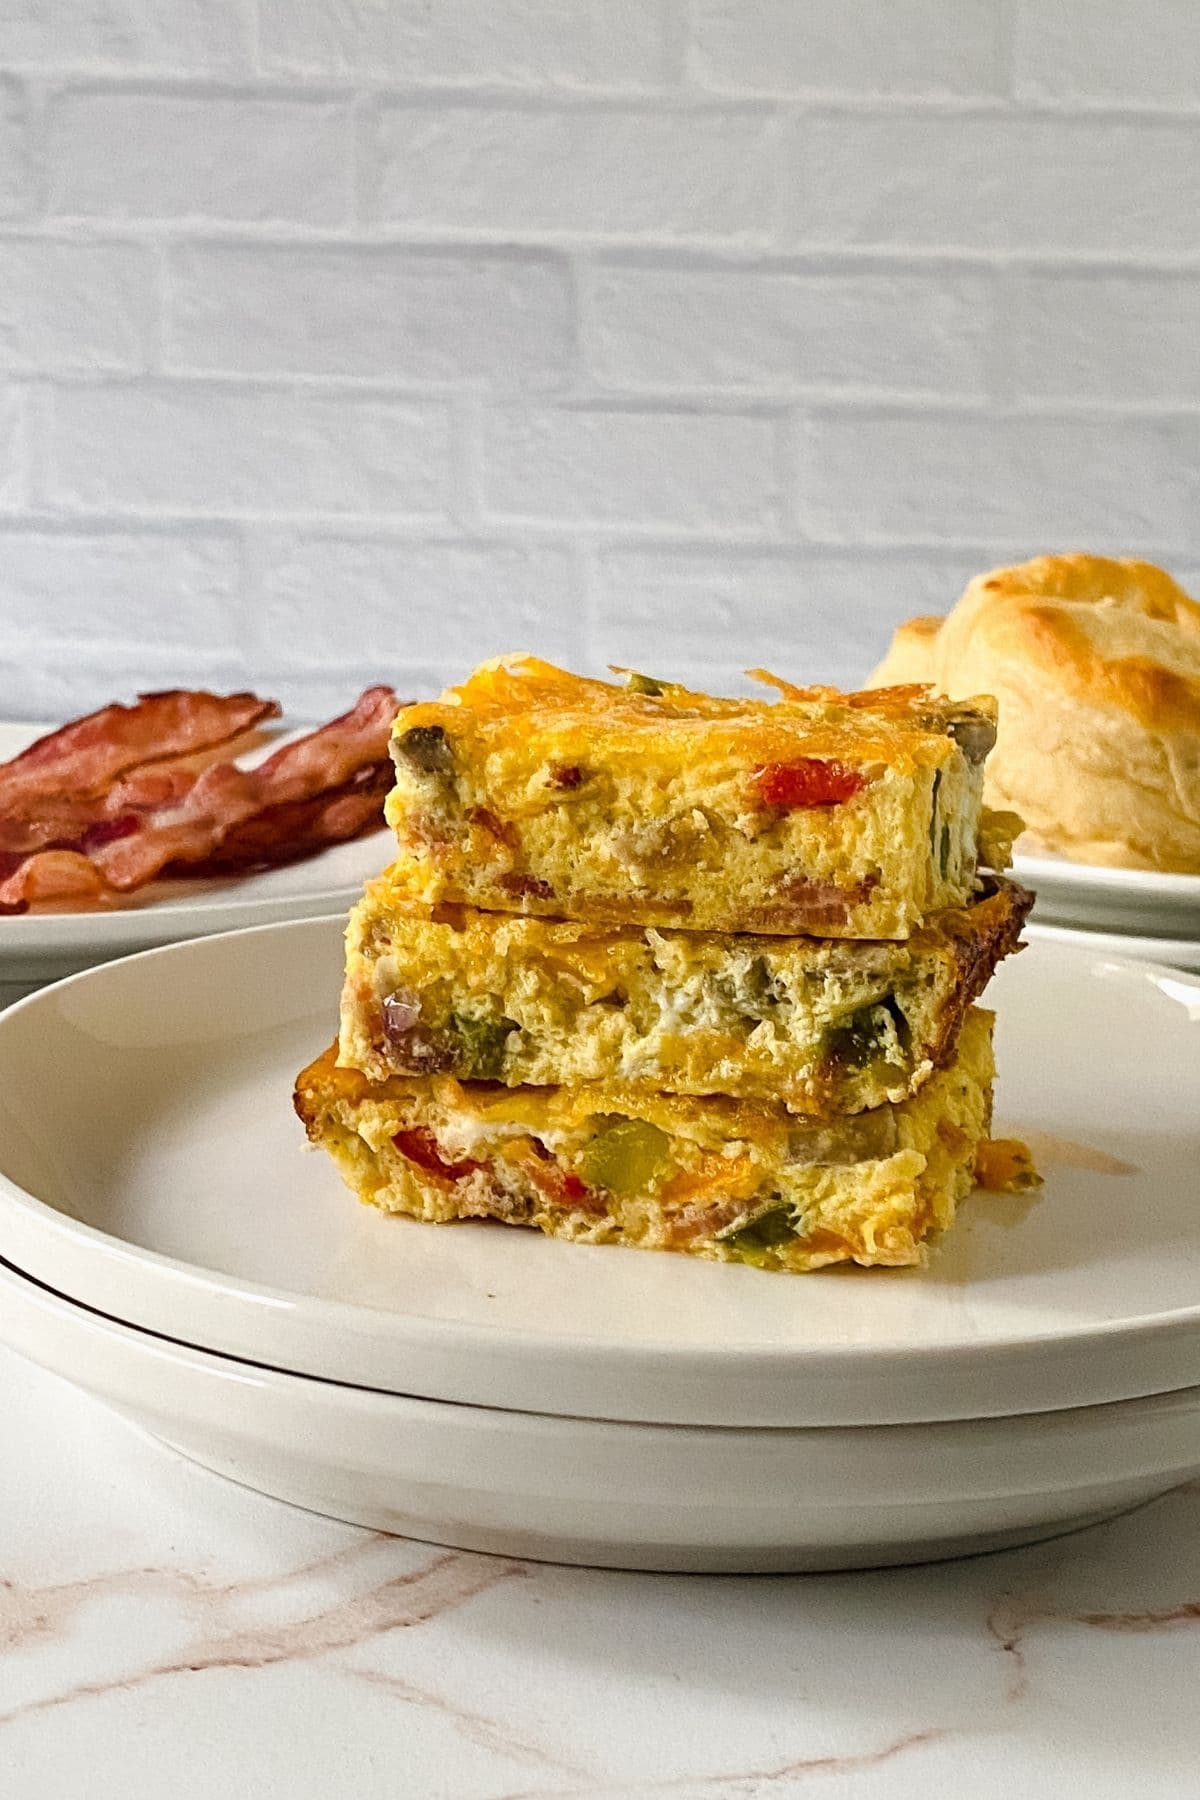 sliced egg bake with bacon and biscuits on plates in background